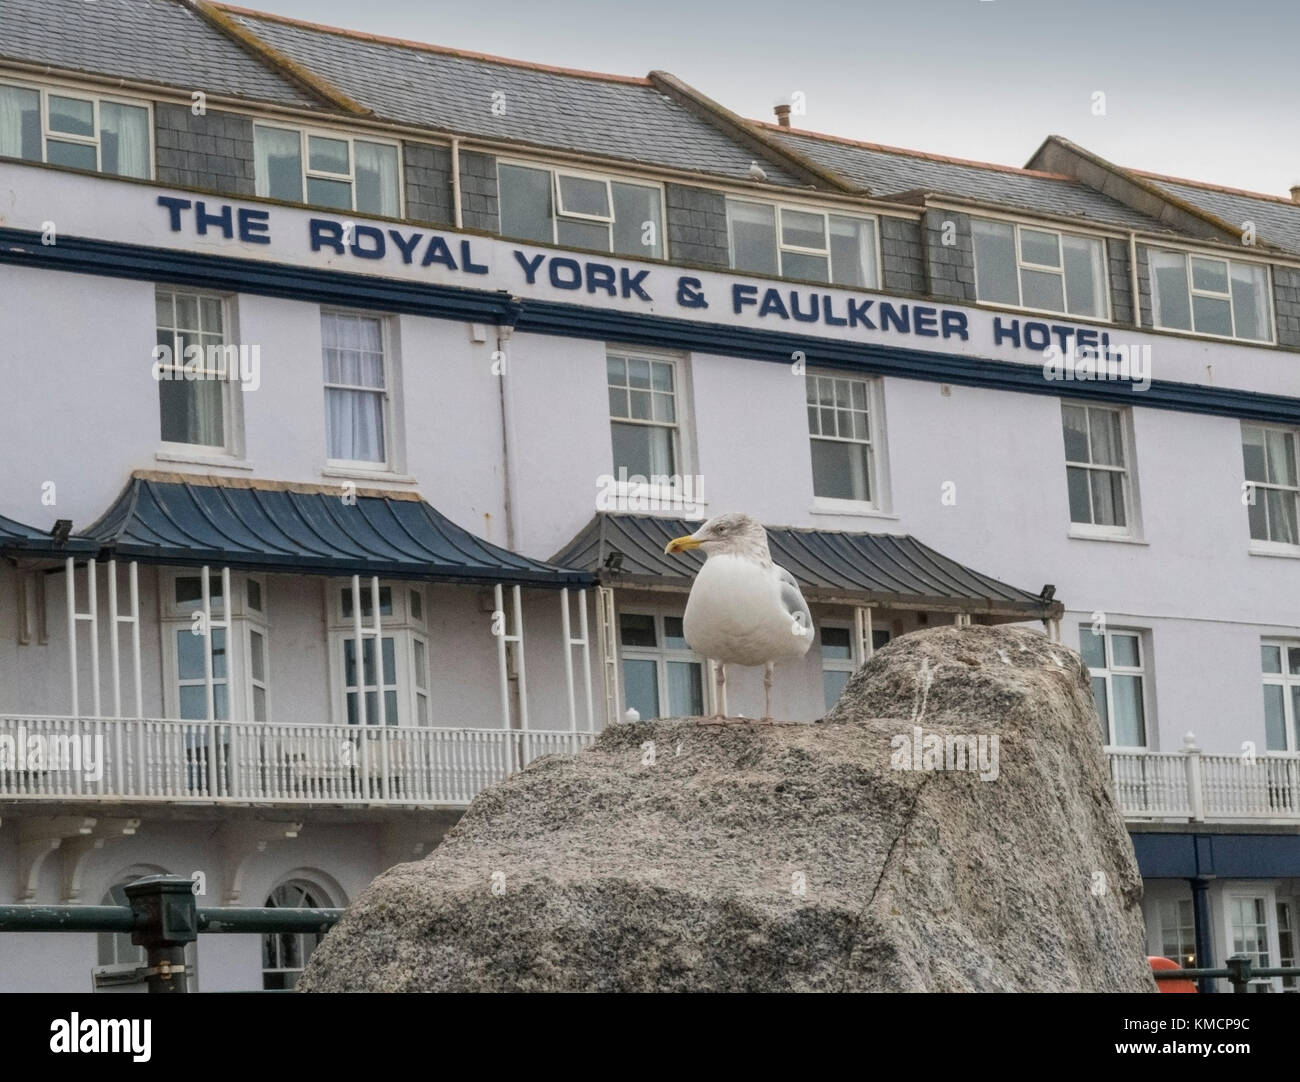 A seagull on Sidmouth seafront.Feeding seagulls is banned across East Devon.Laridae - Stock Image